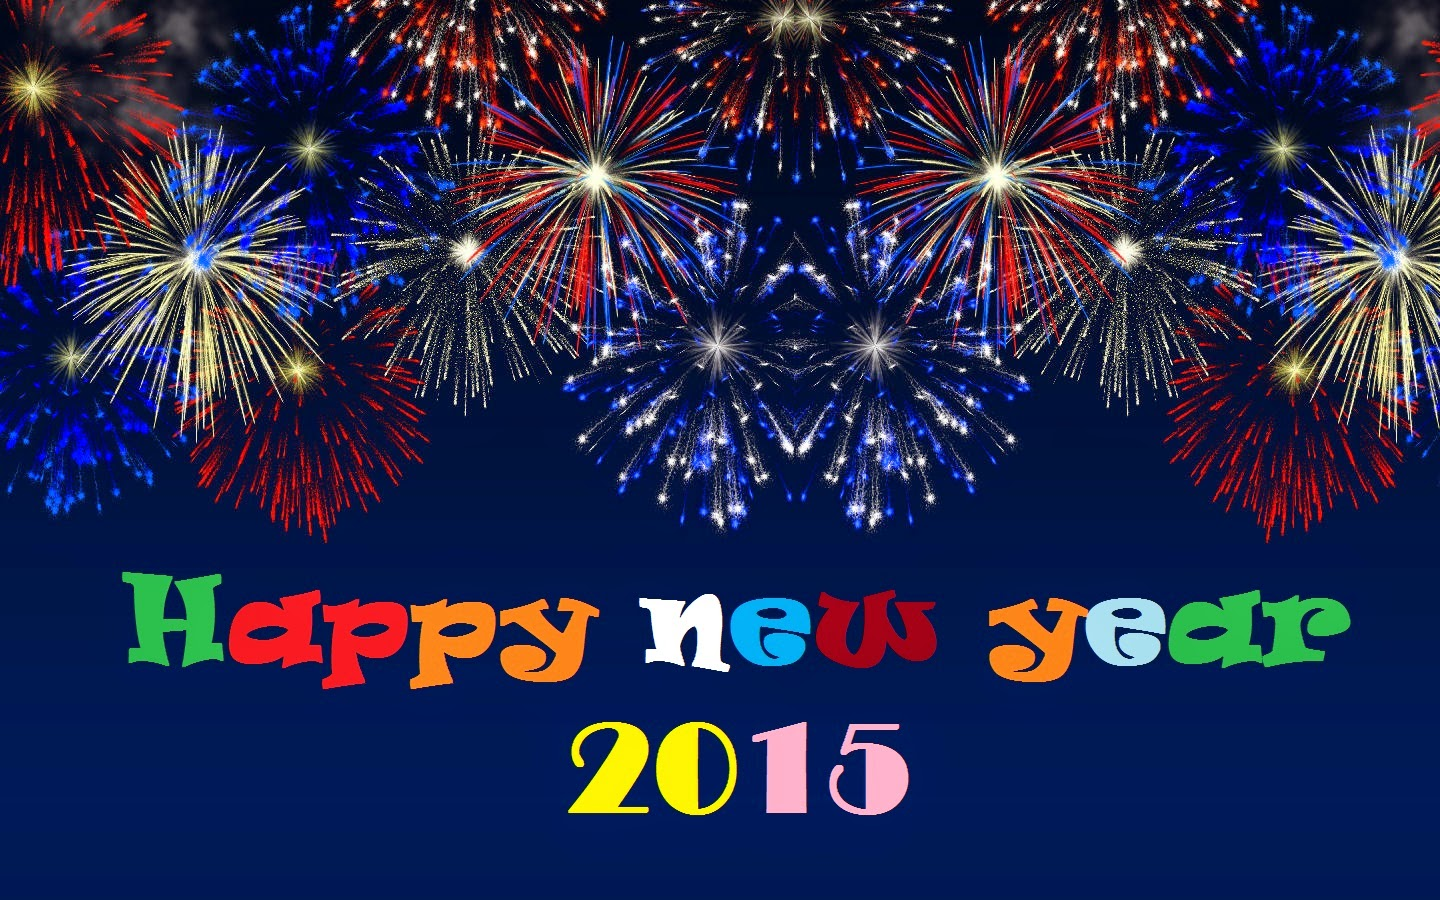 new year 2015 desktop background wallpapers happy new year desktop 1440x900